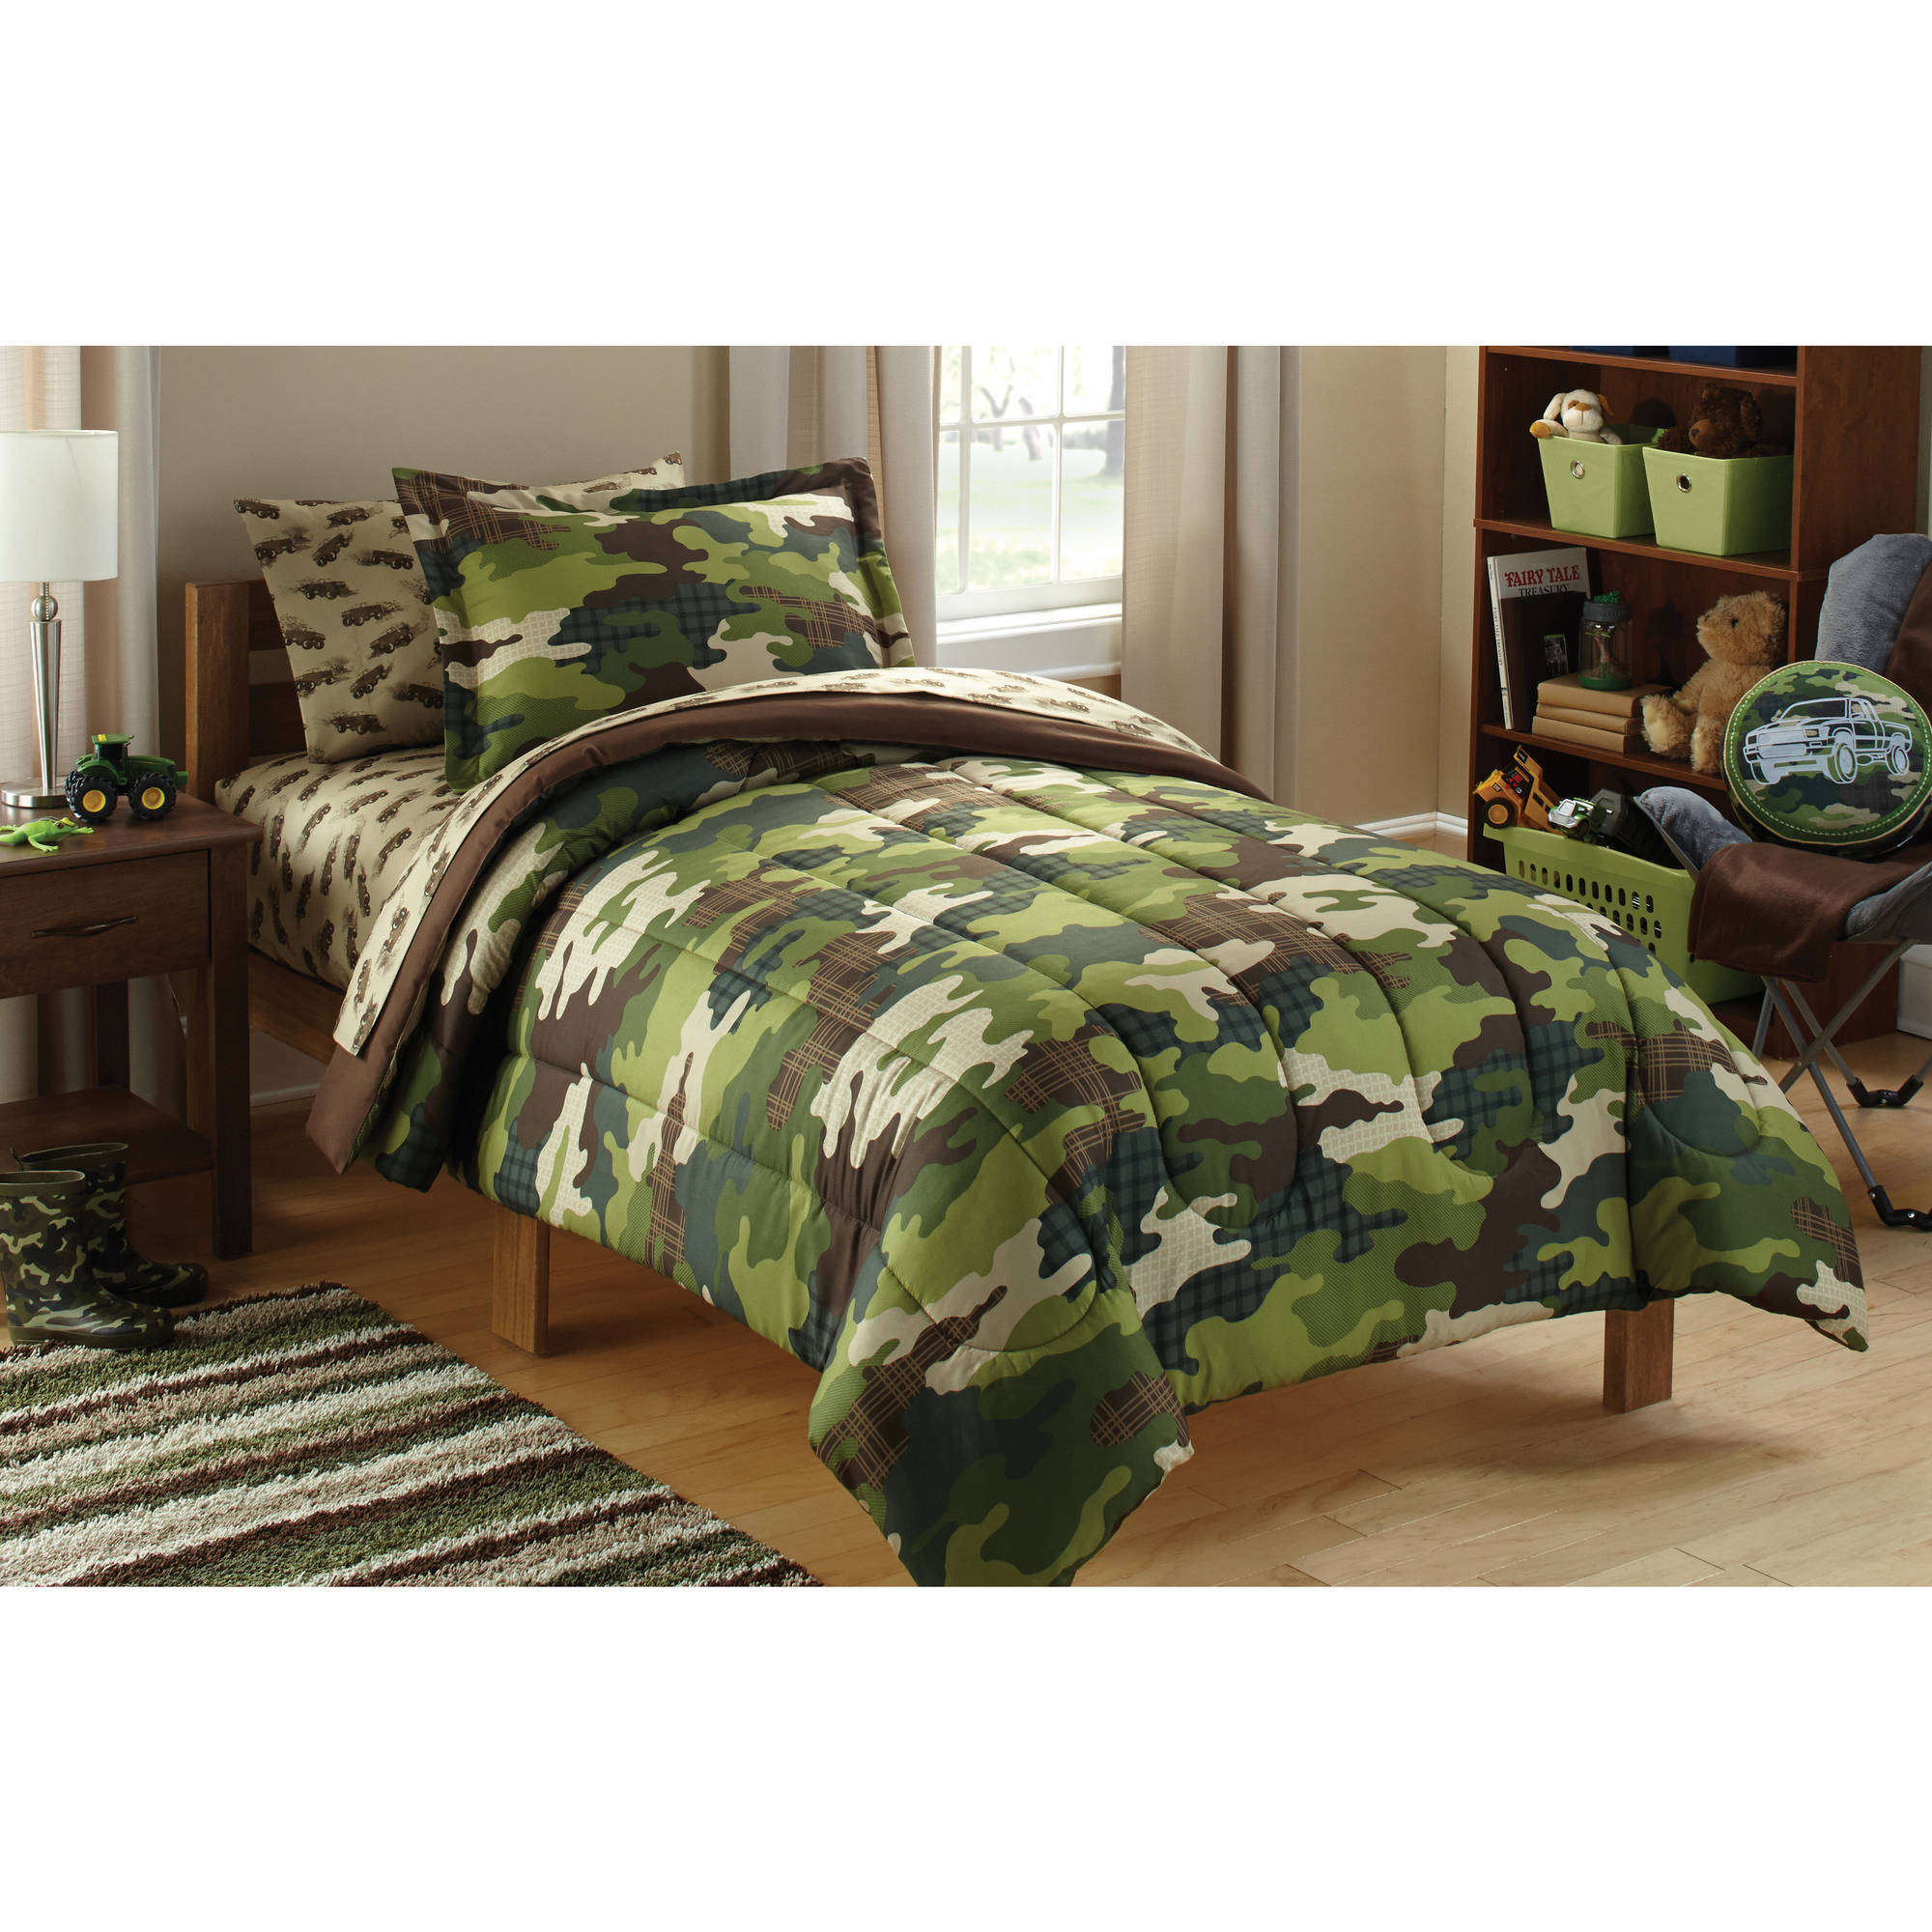 Mainstays Kids' Camoflauge Coordinated Bed in a Bag by Keeco